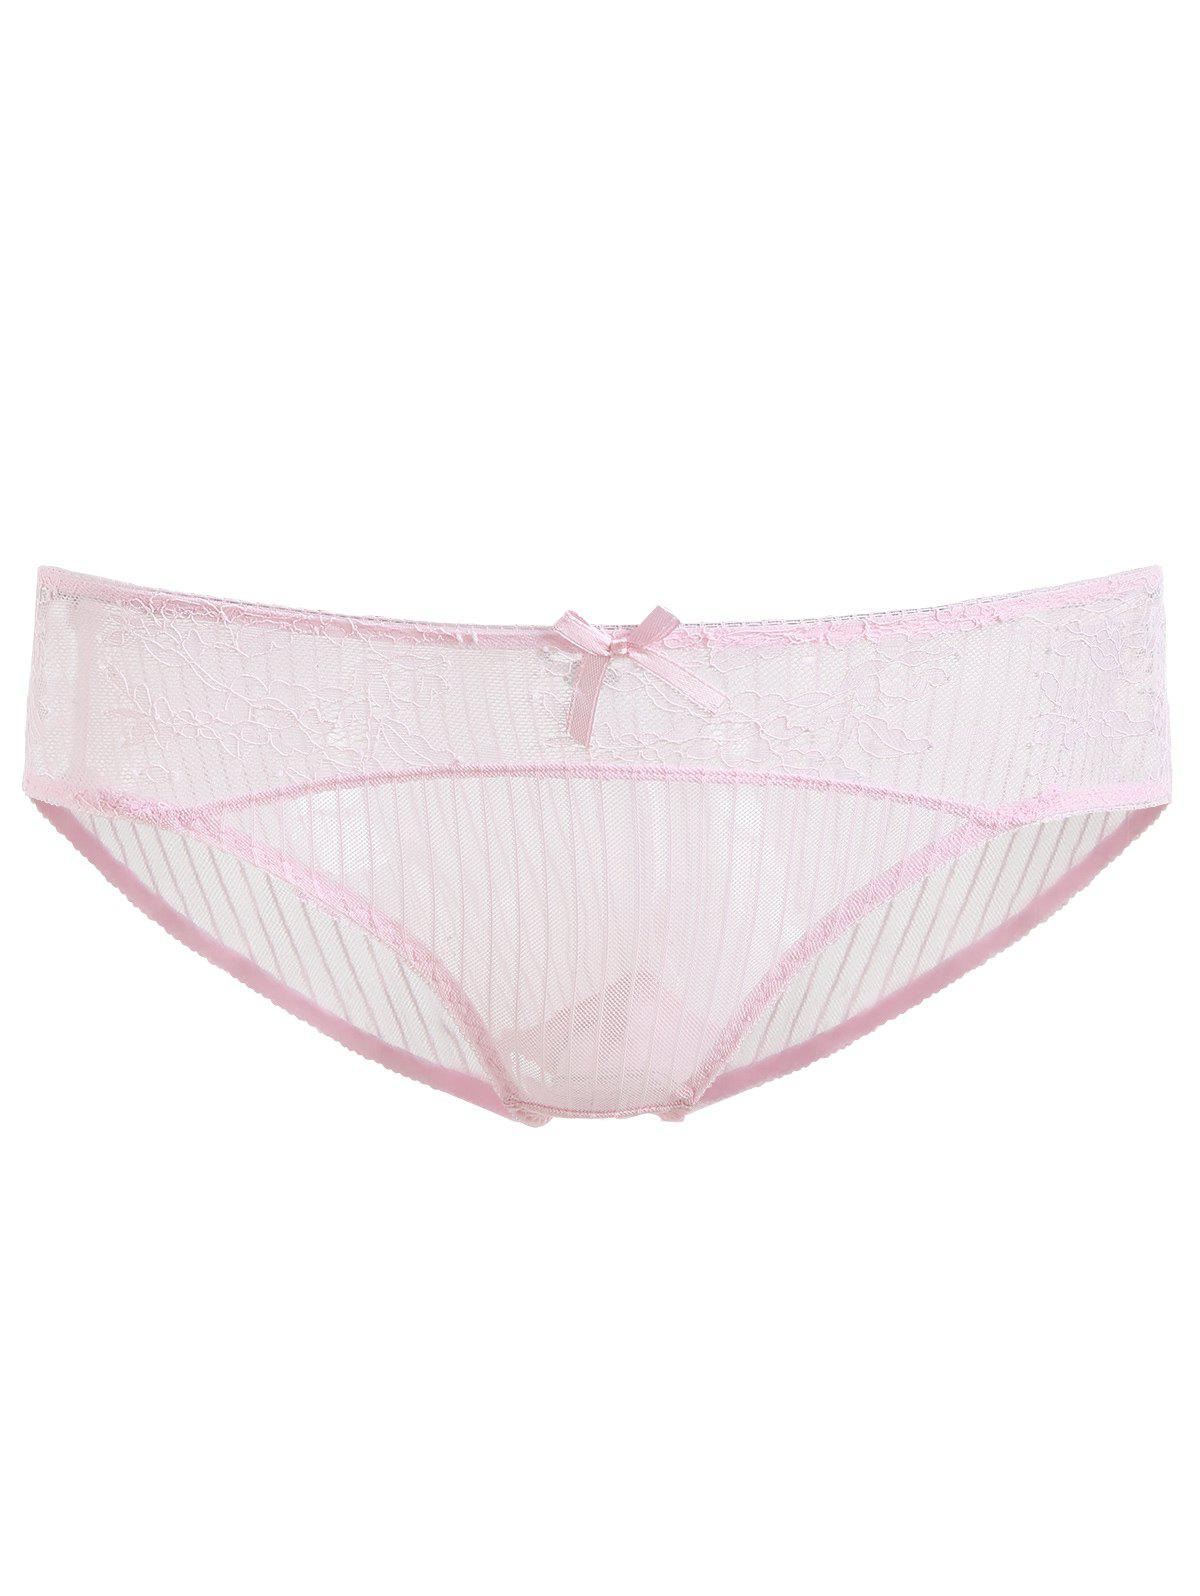 Fashion Transparent Lace Soft Breathable Underwear